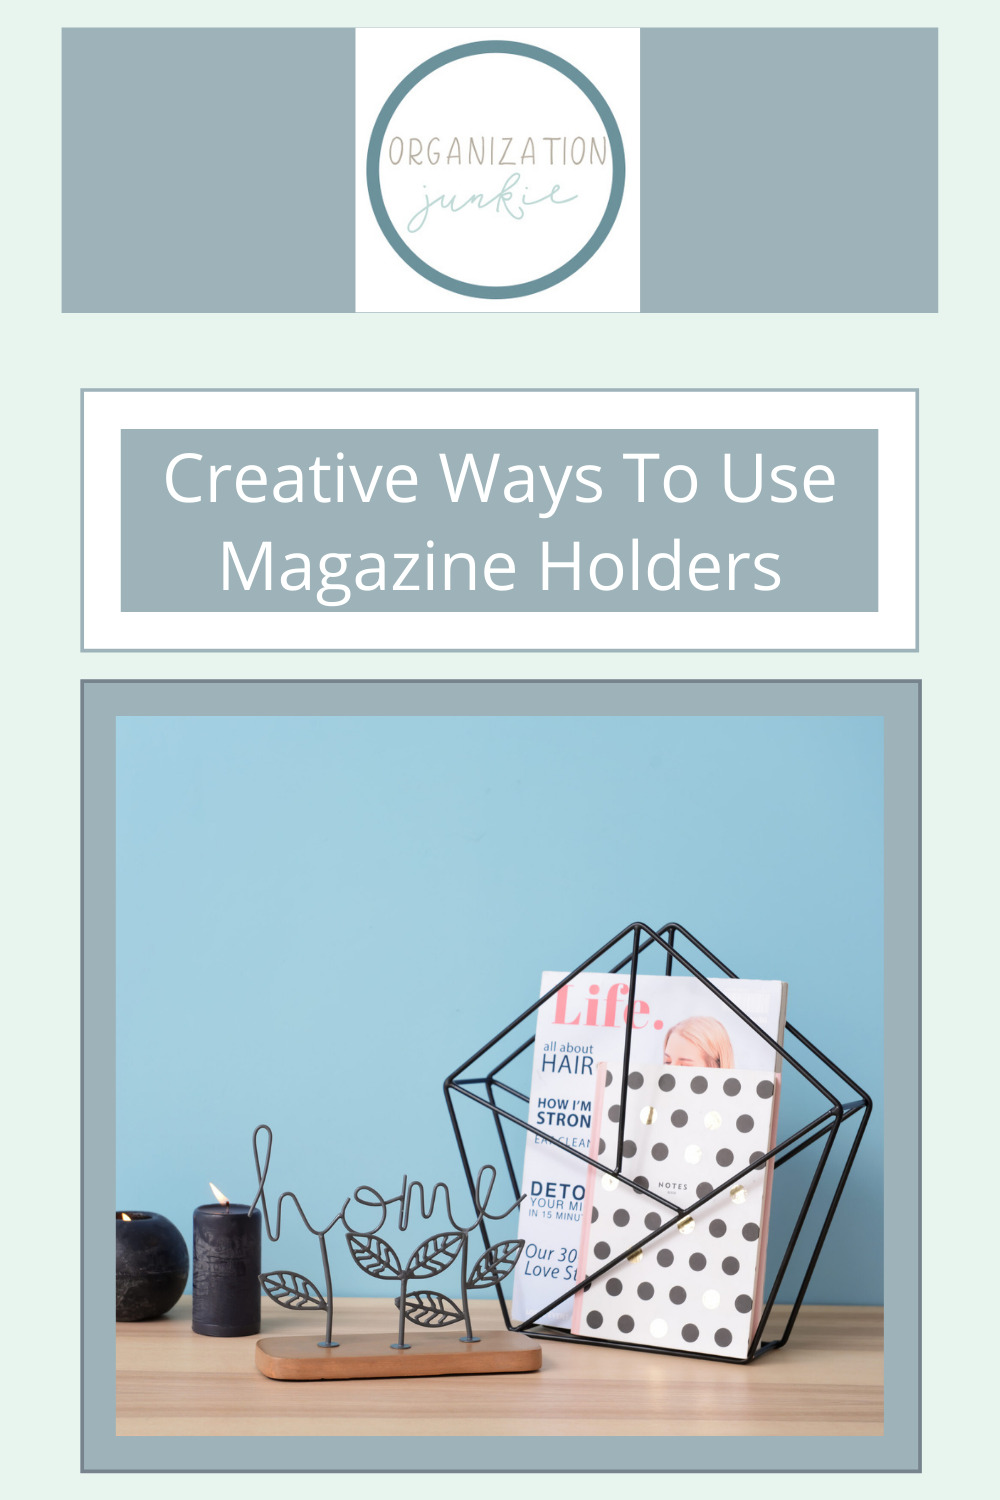 Organizationjunkie.com makes organizing your entire life easier than ever! Find creative ways to stay on top of day-to-day clutter. Make things easier by repurposing your old magazine holders for creative storage solutions!